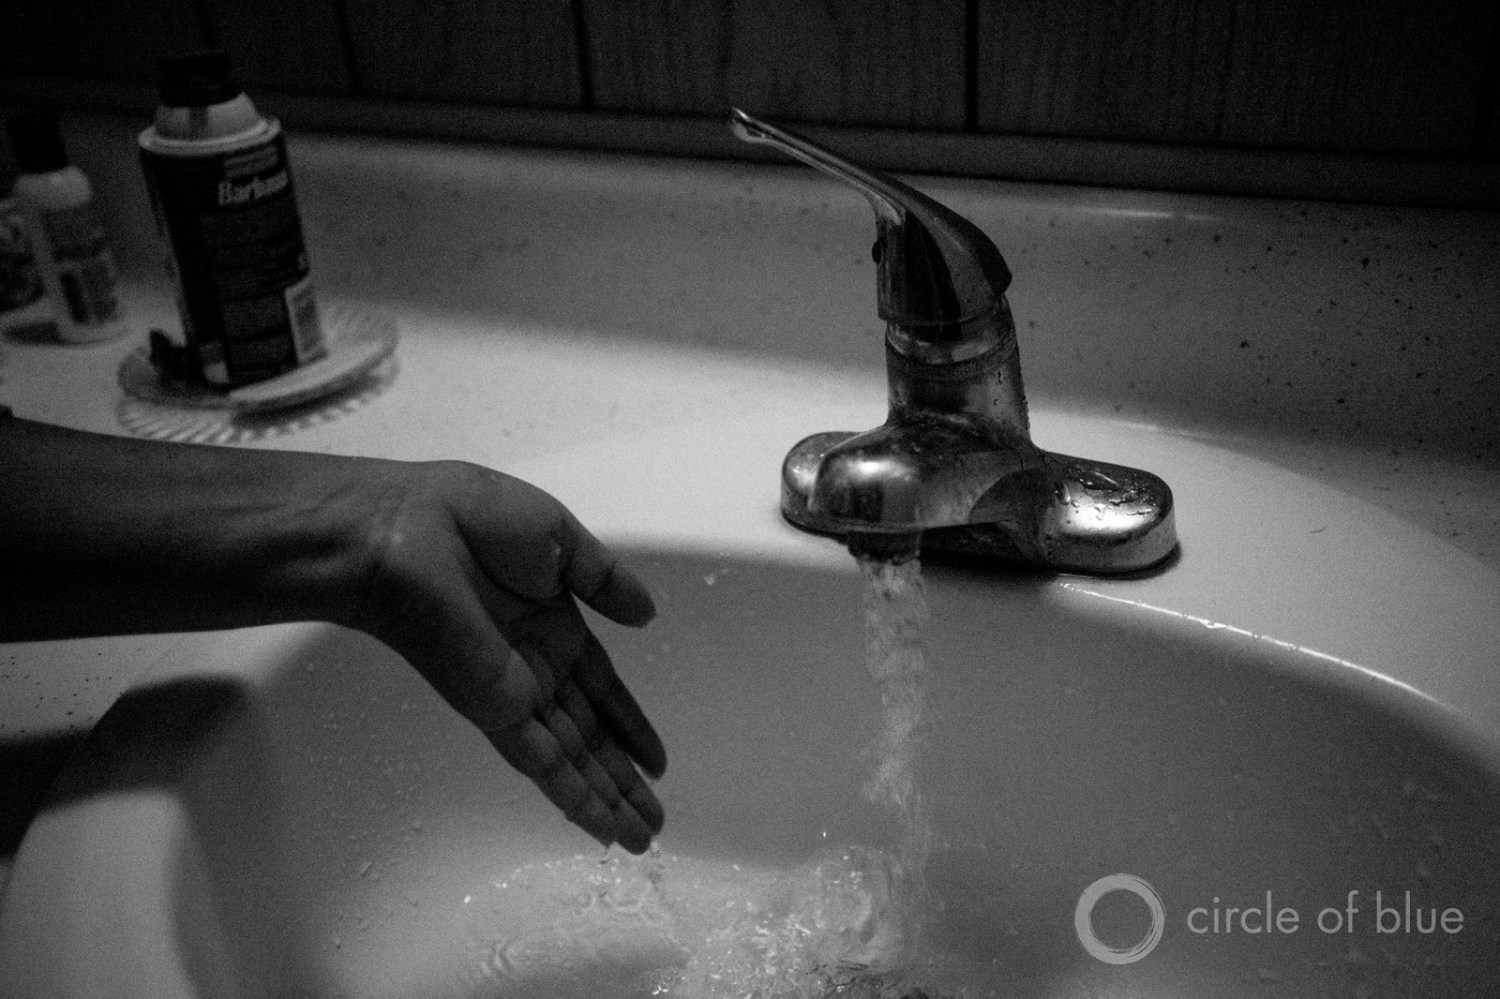 Gabriela Rodriguez prepares to give her baby a bath at their home in Kettleman City, in California's San Joaquin Valley. Many residents of this small farmworker community fear their water supply after a rash of defects struck the town. Photo © Matt Black for Circle of Blue